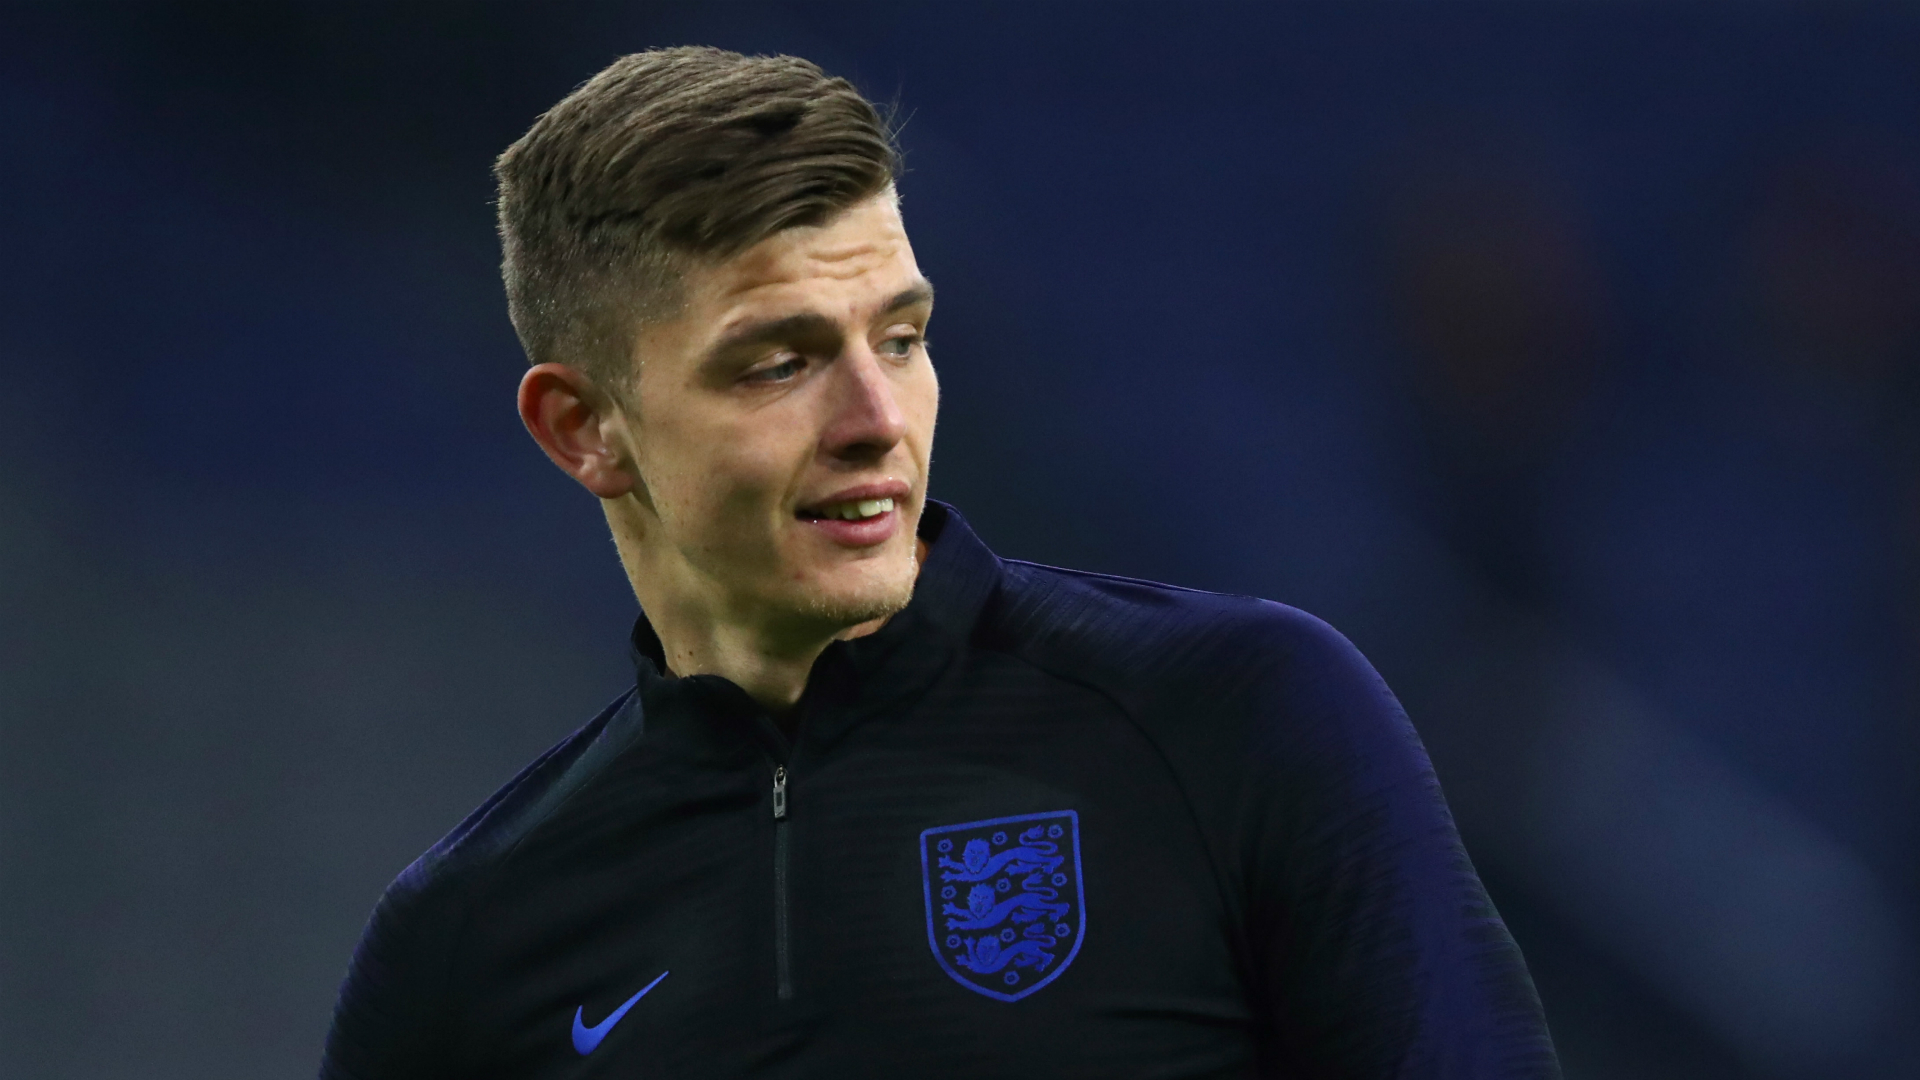 'Incredible Pope has earned World Cup selection' - Heaton backs Burnley team-mate's England call